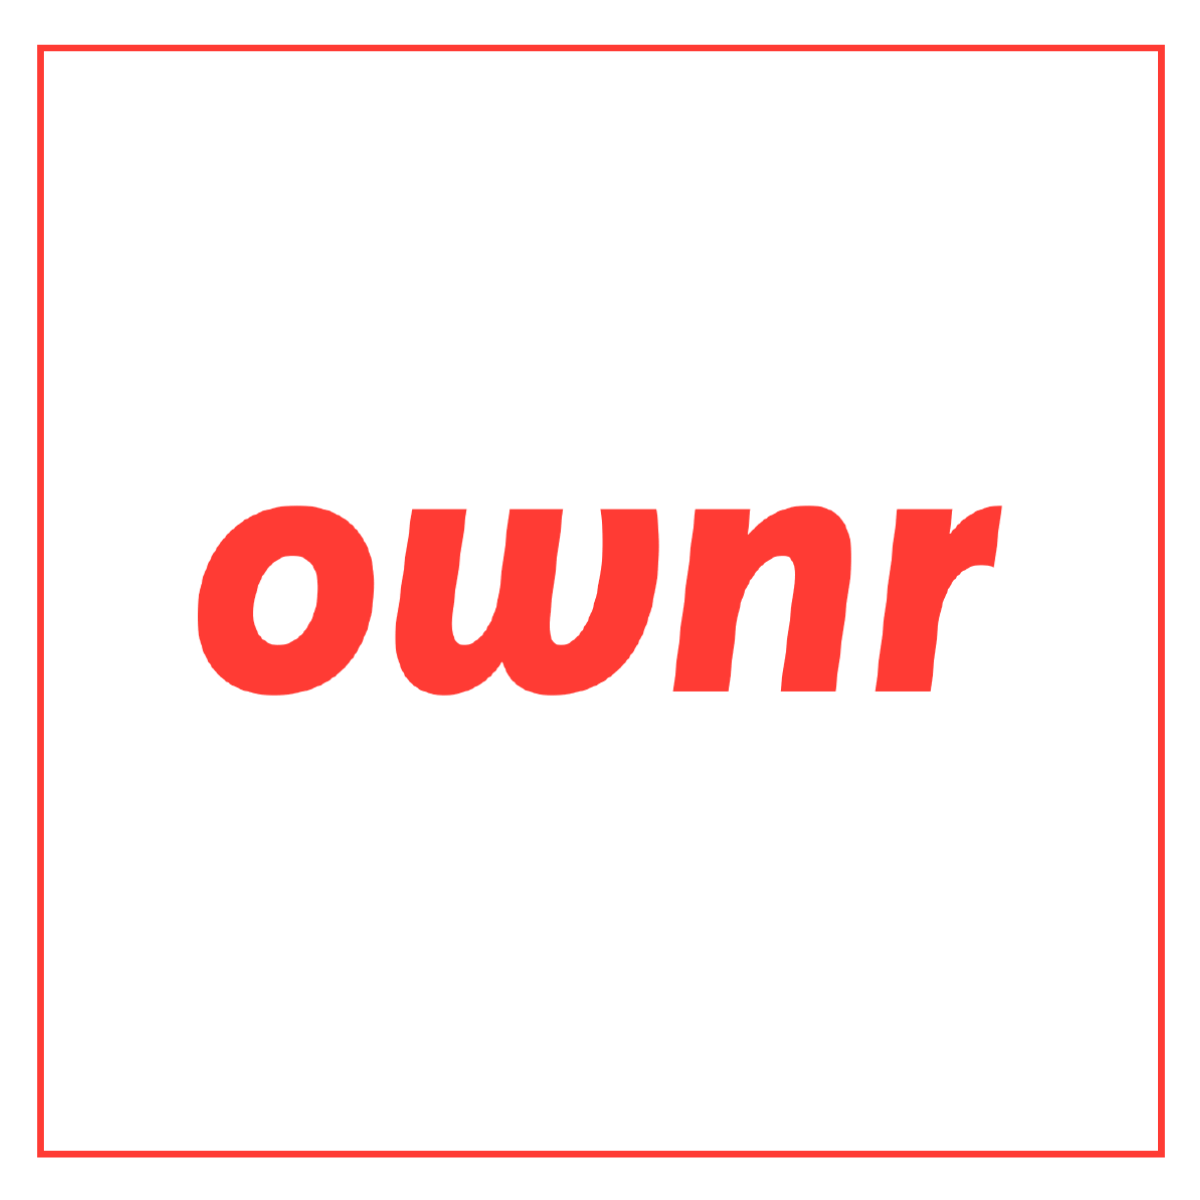 Ownr – Helping Canadian Entrepreneurs Launch Their Businesses So They Can Focus on What They Do Best